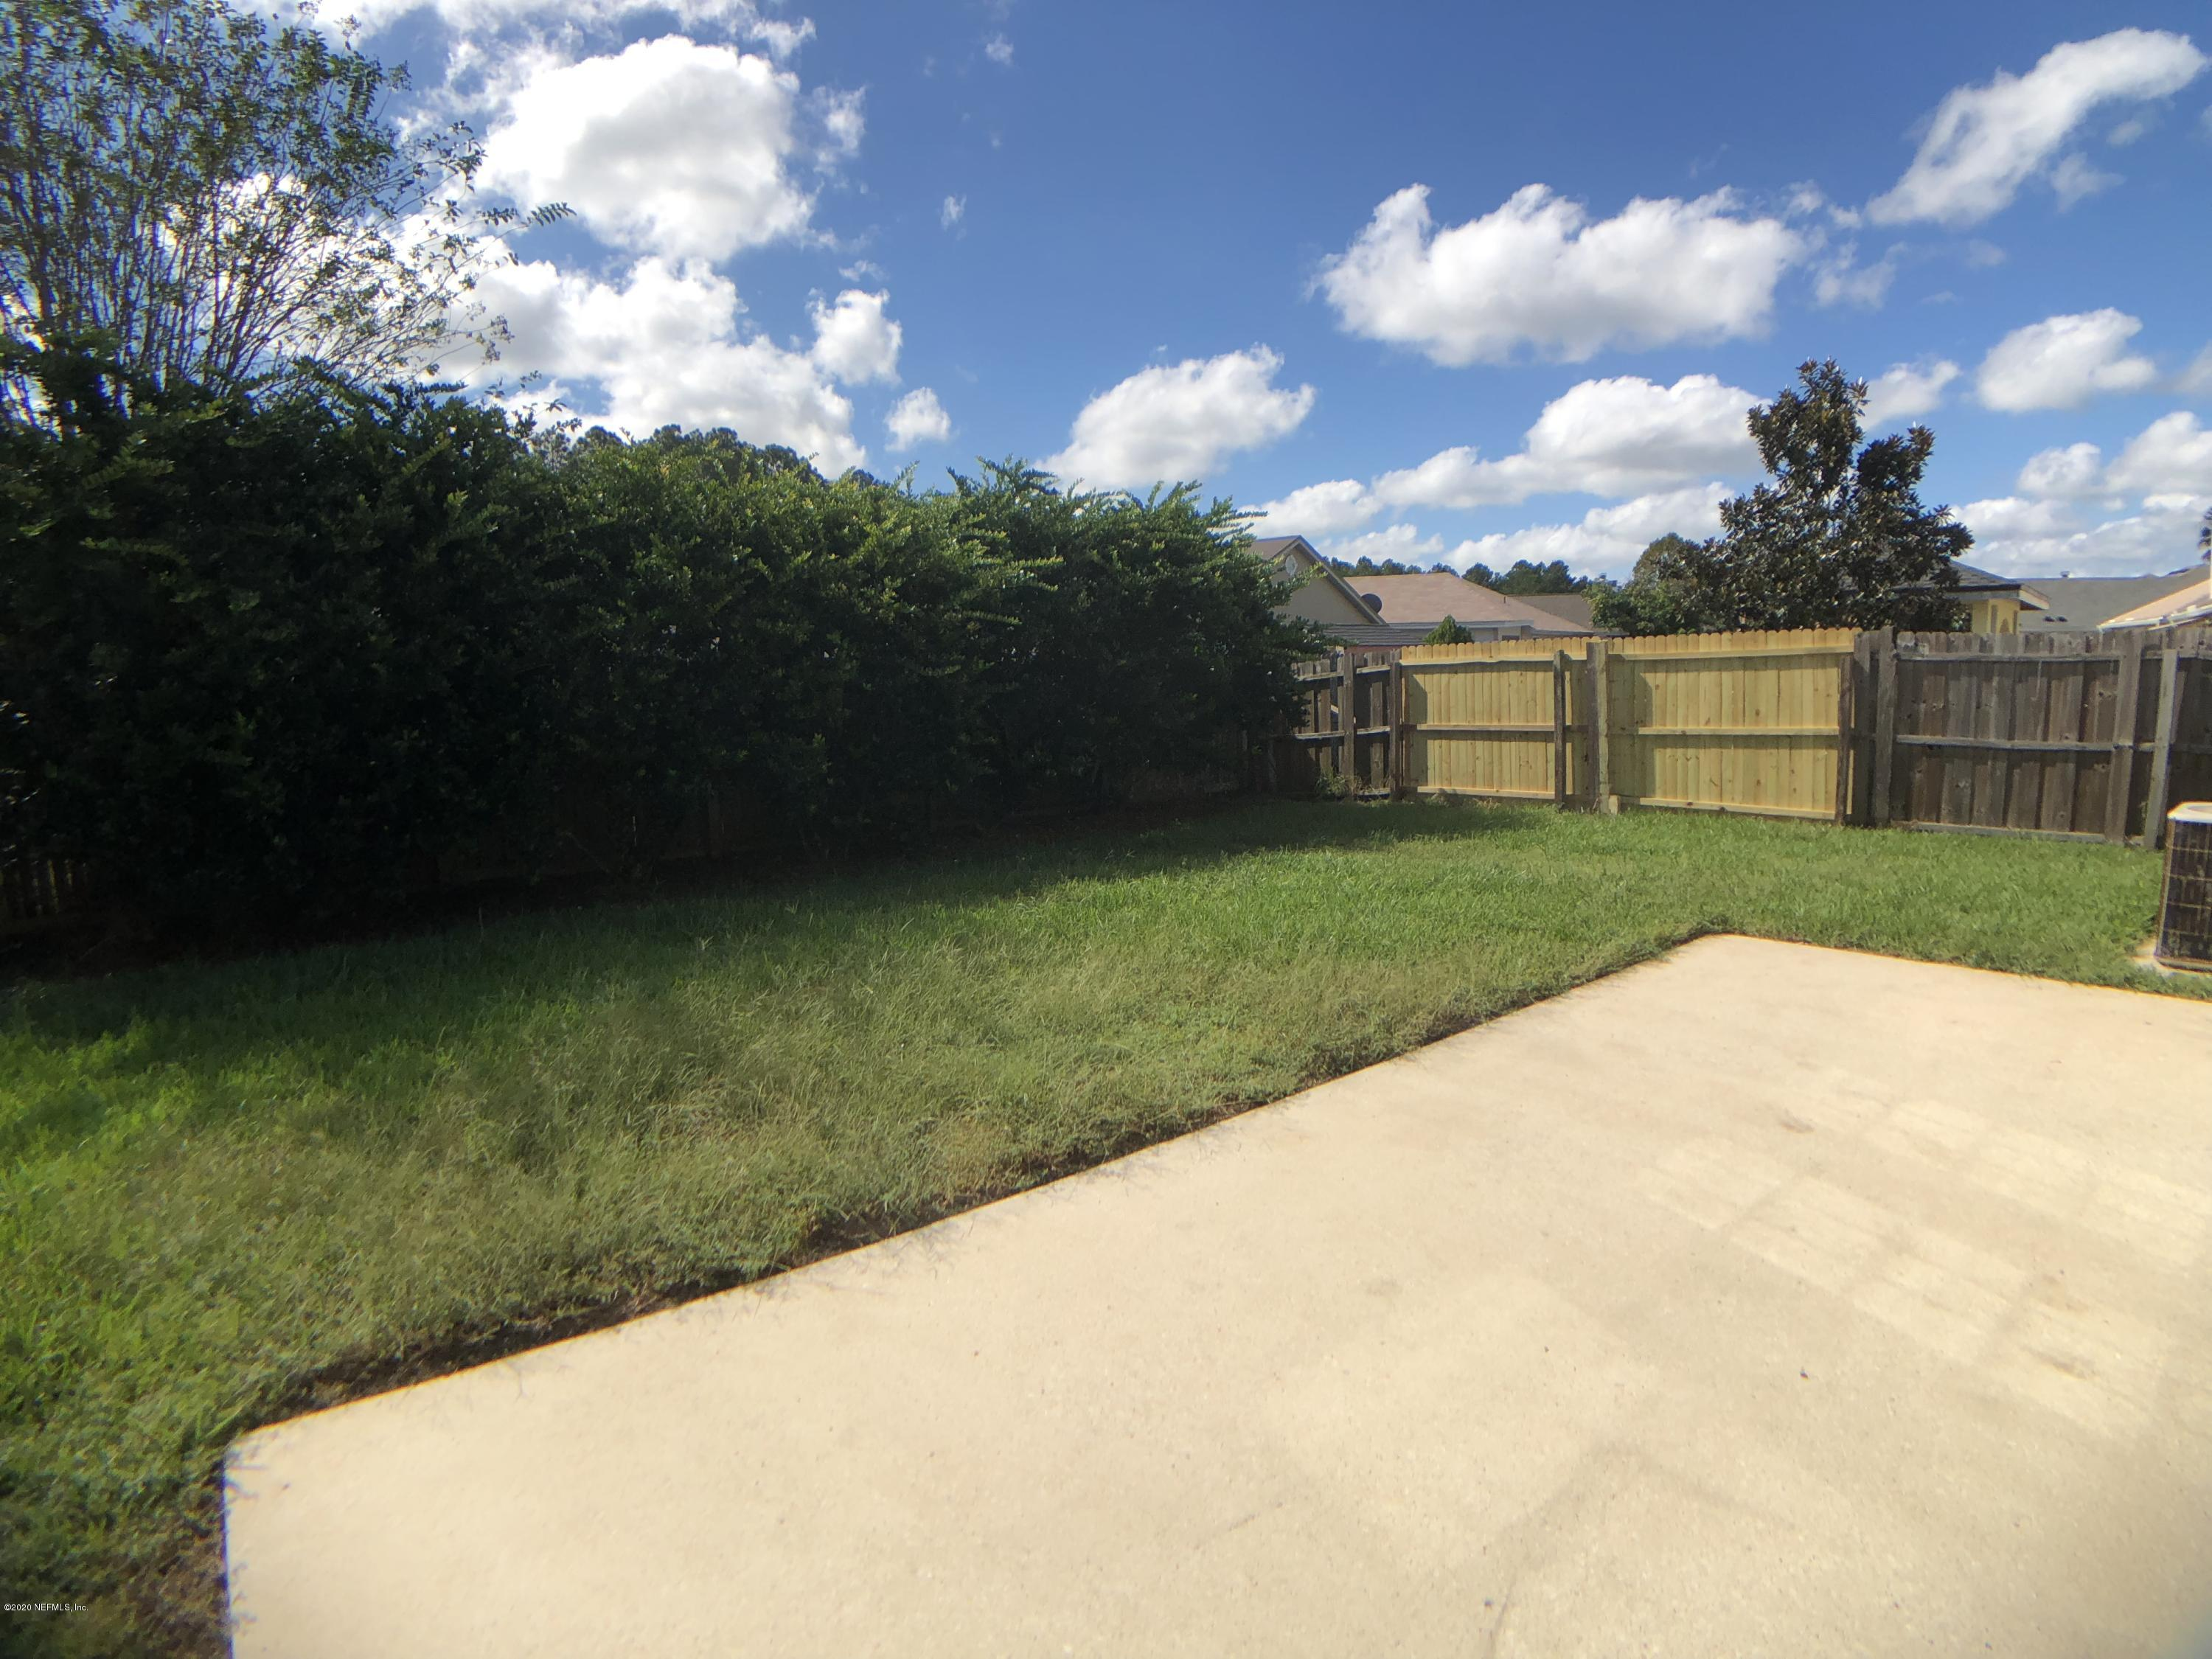 4085 SAVANNAH GLEN, ORANGE PARK, FLORIDA 32073, 3 Bedrooms Bedrooms, ,2 BathroomsBathrooms,Rental,For sale,SAVANNAH GLEN,1031921